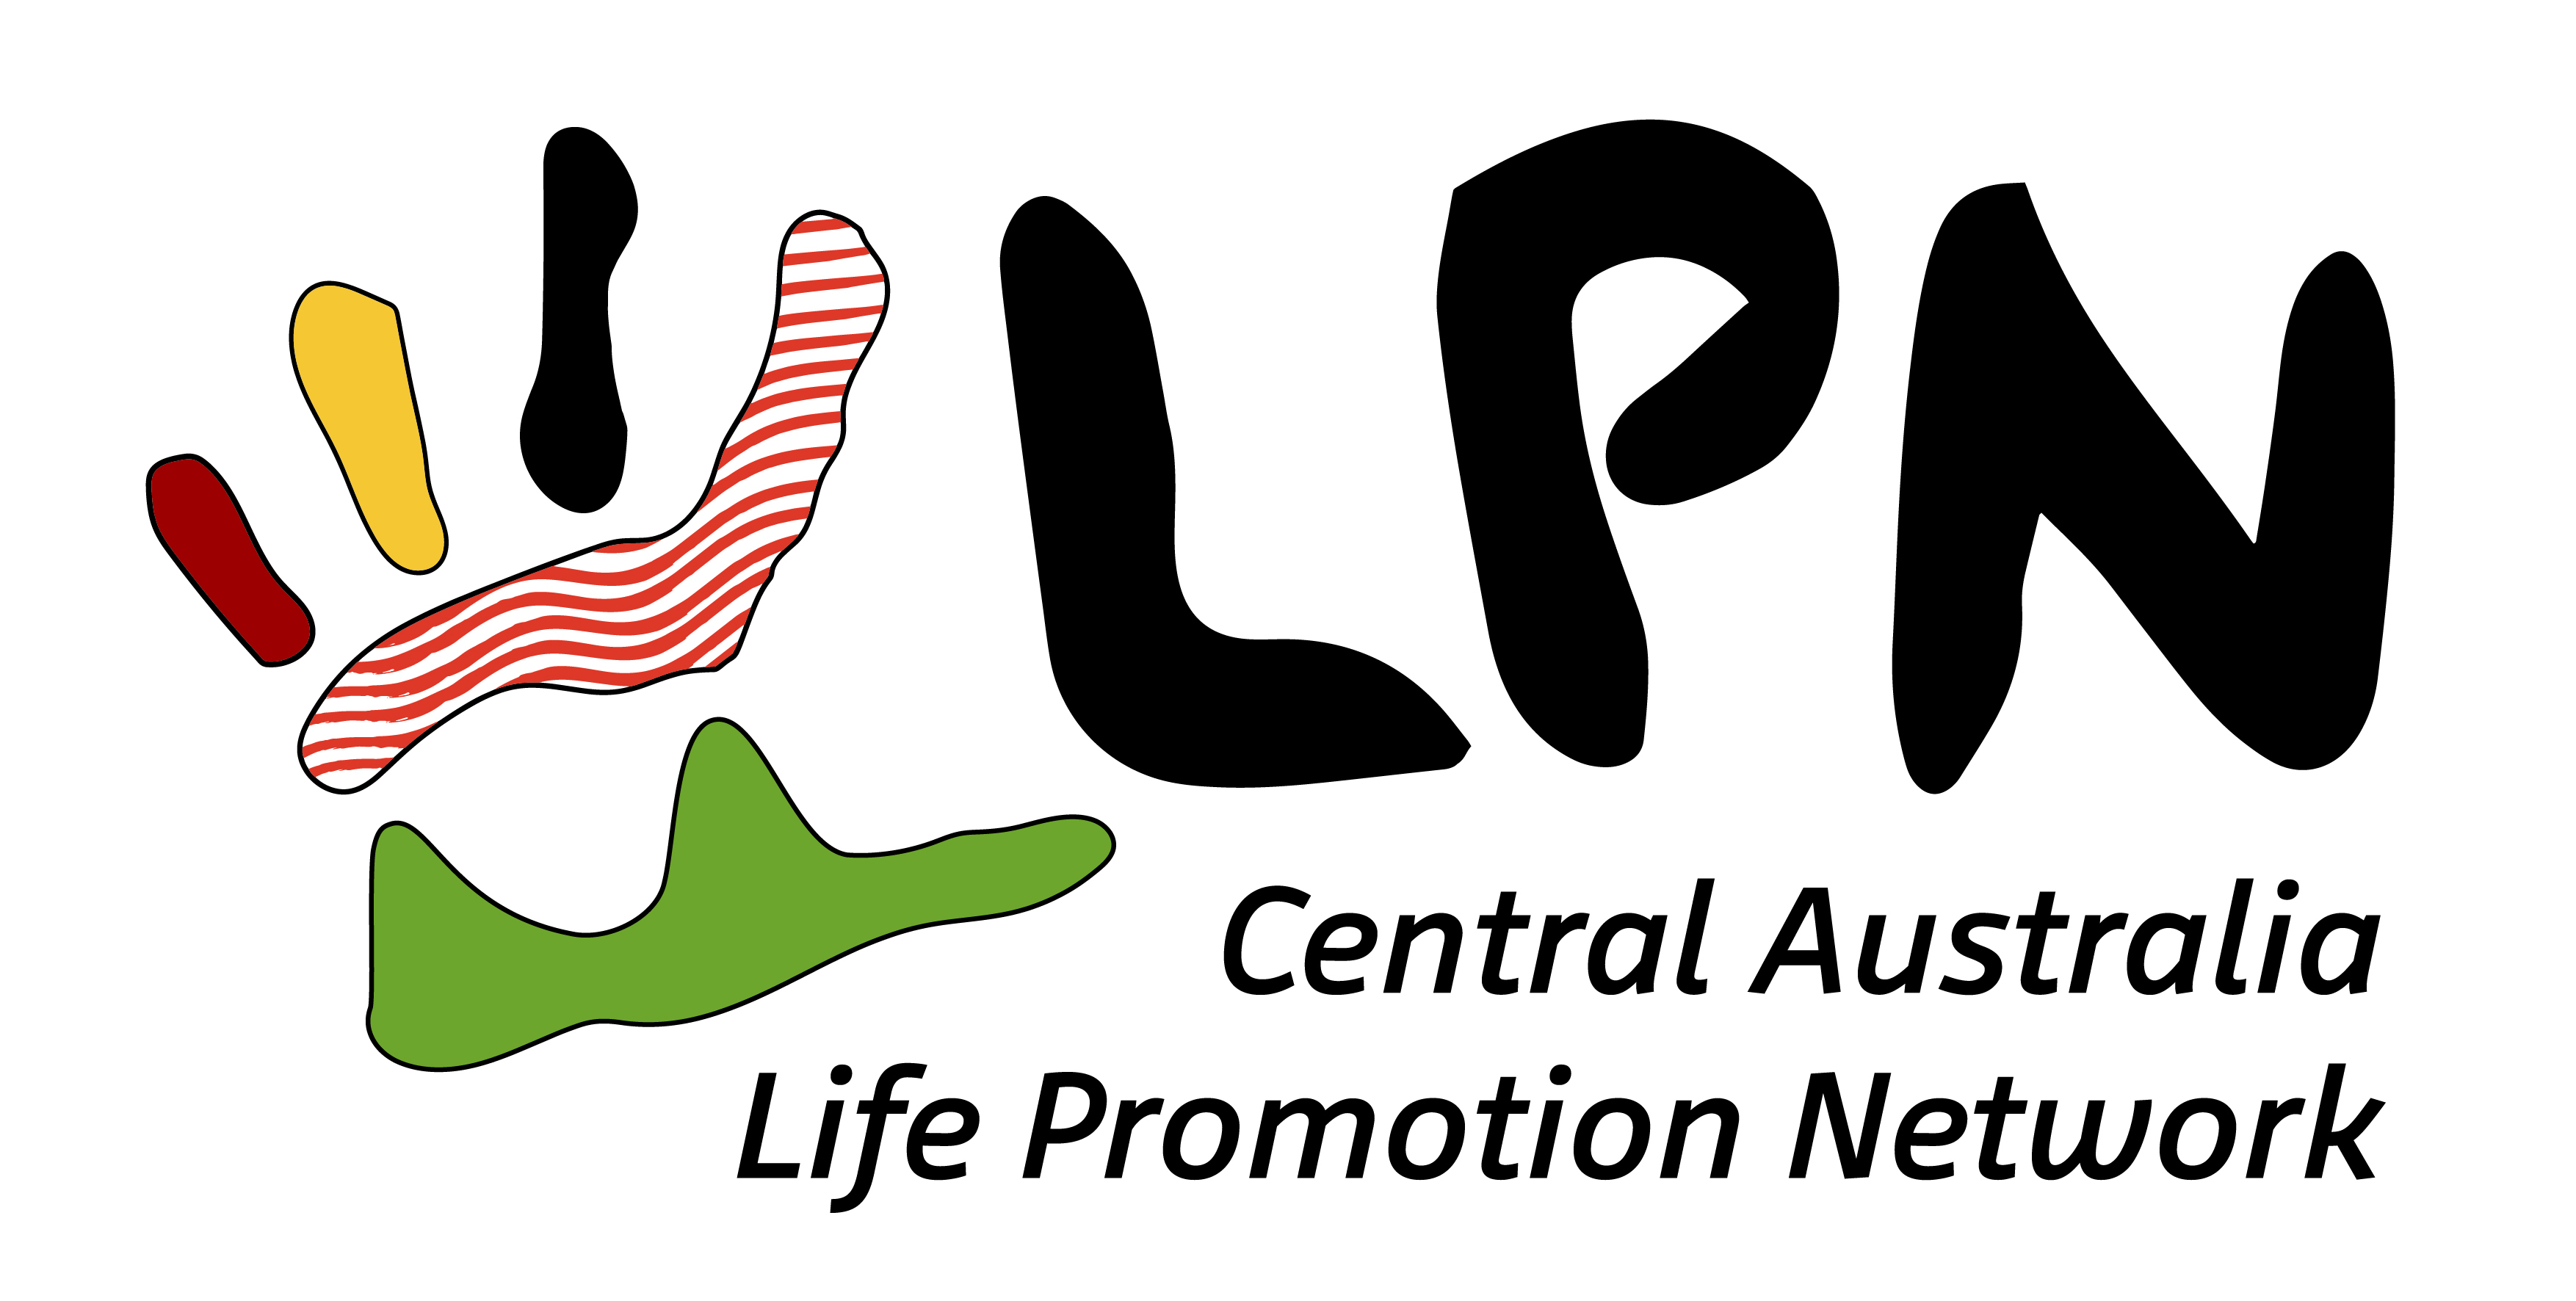 Central Australia Life Promotion Network logo